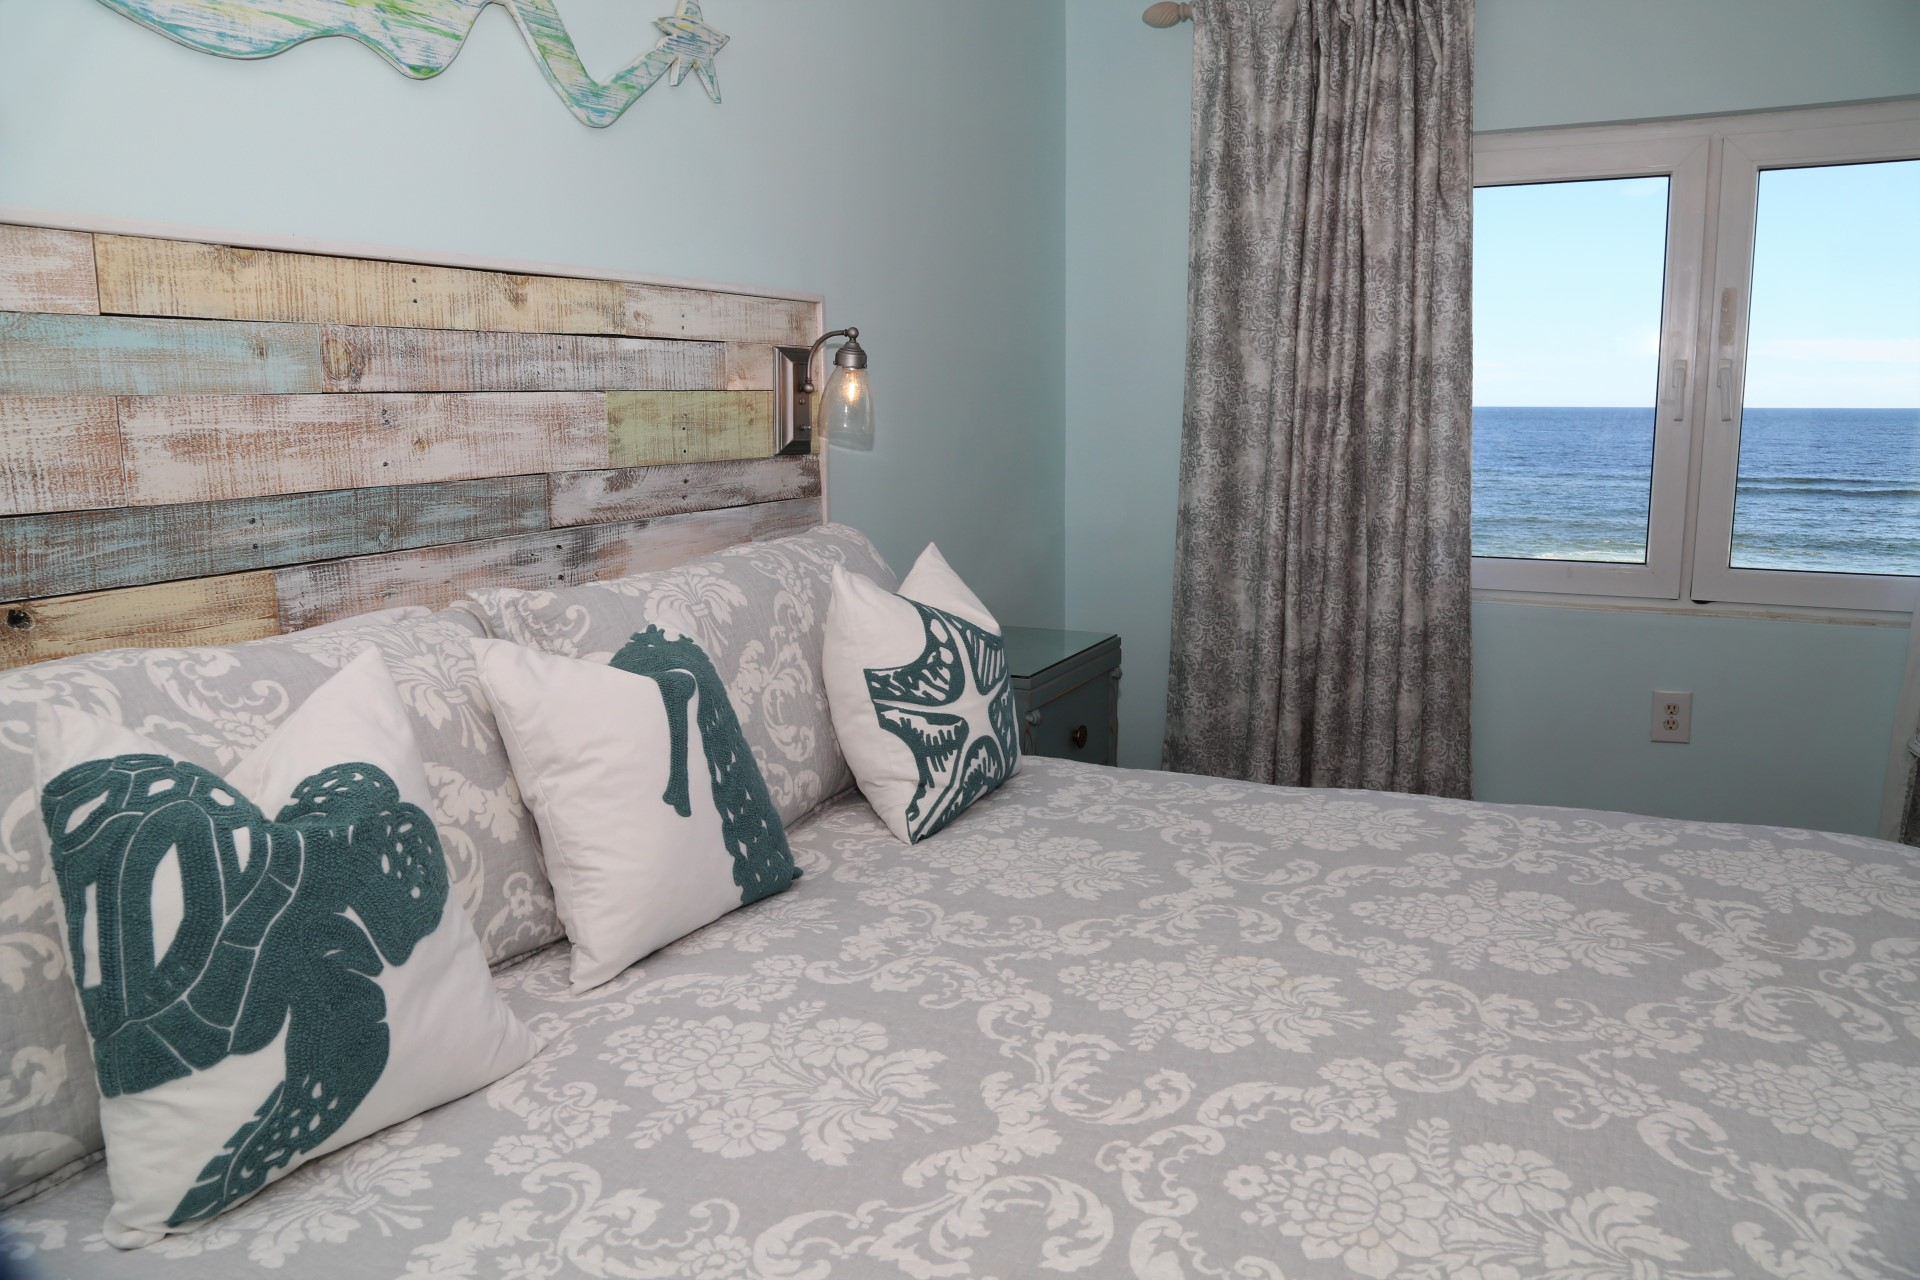 Wake up to the refreshing views of the coastal water while e